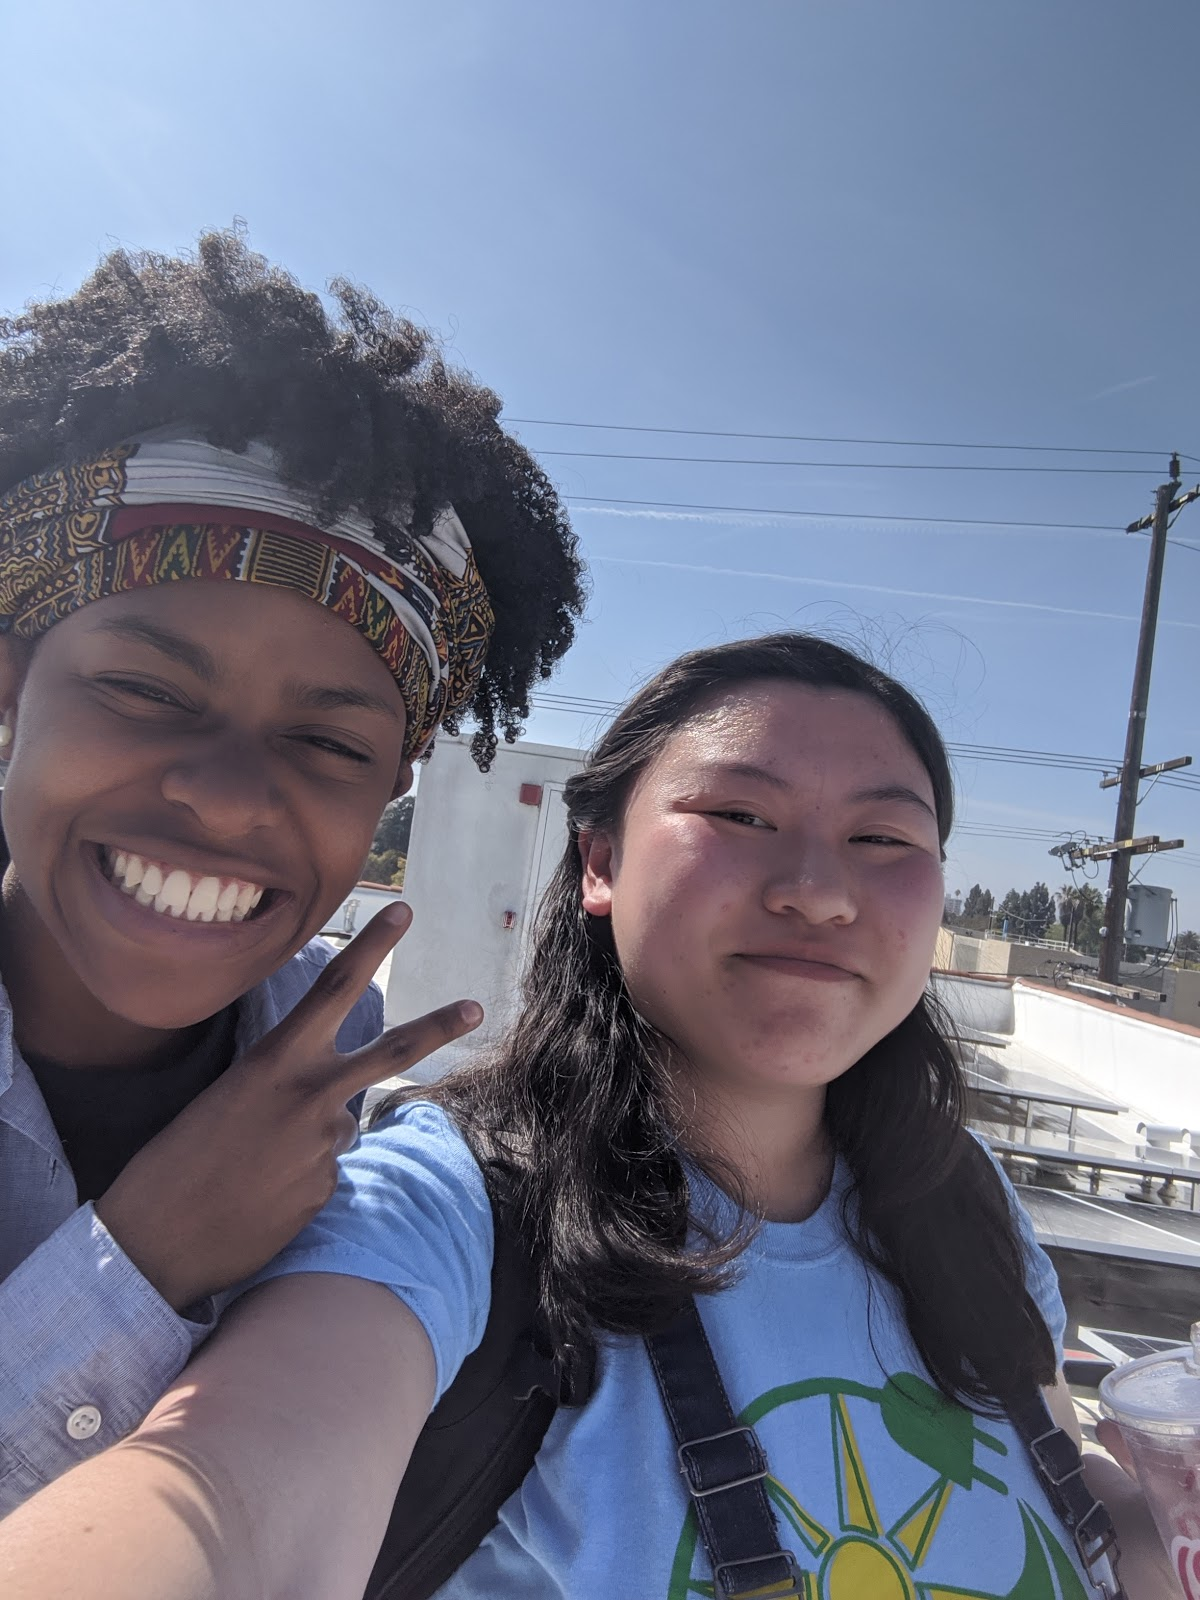 Image: Two women taking a selfie and making a peace sign gesture